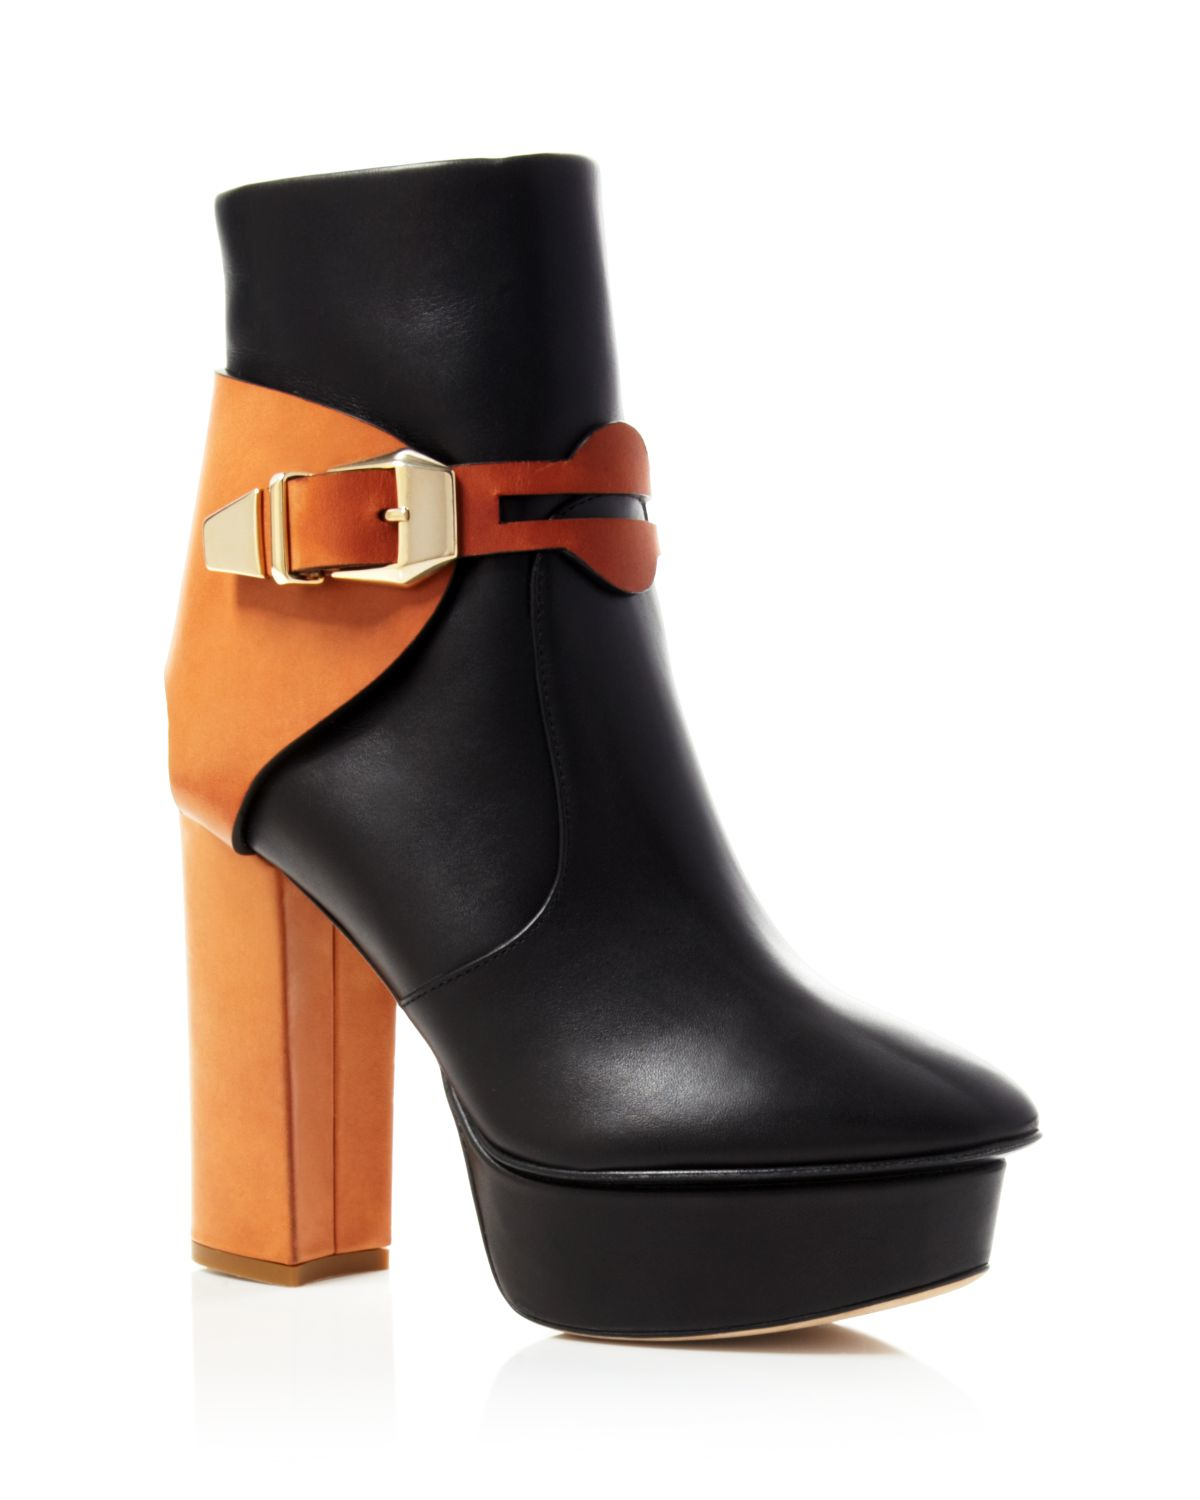 websites for sale cheap 2015 new Jerome C. Rousseau Suede Platform Booties free shipping with mastercard outlet visit arXC8cnm